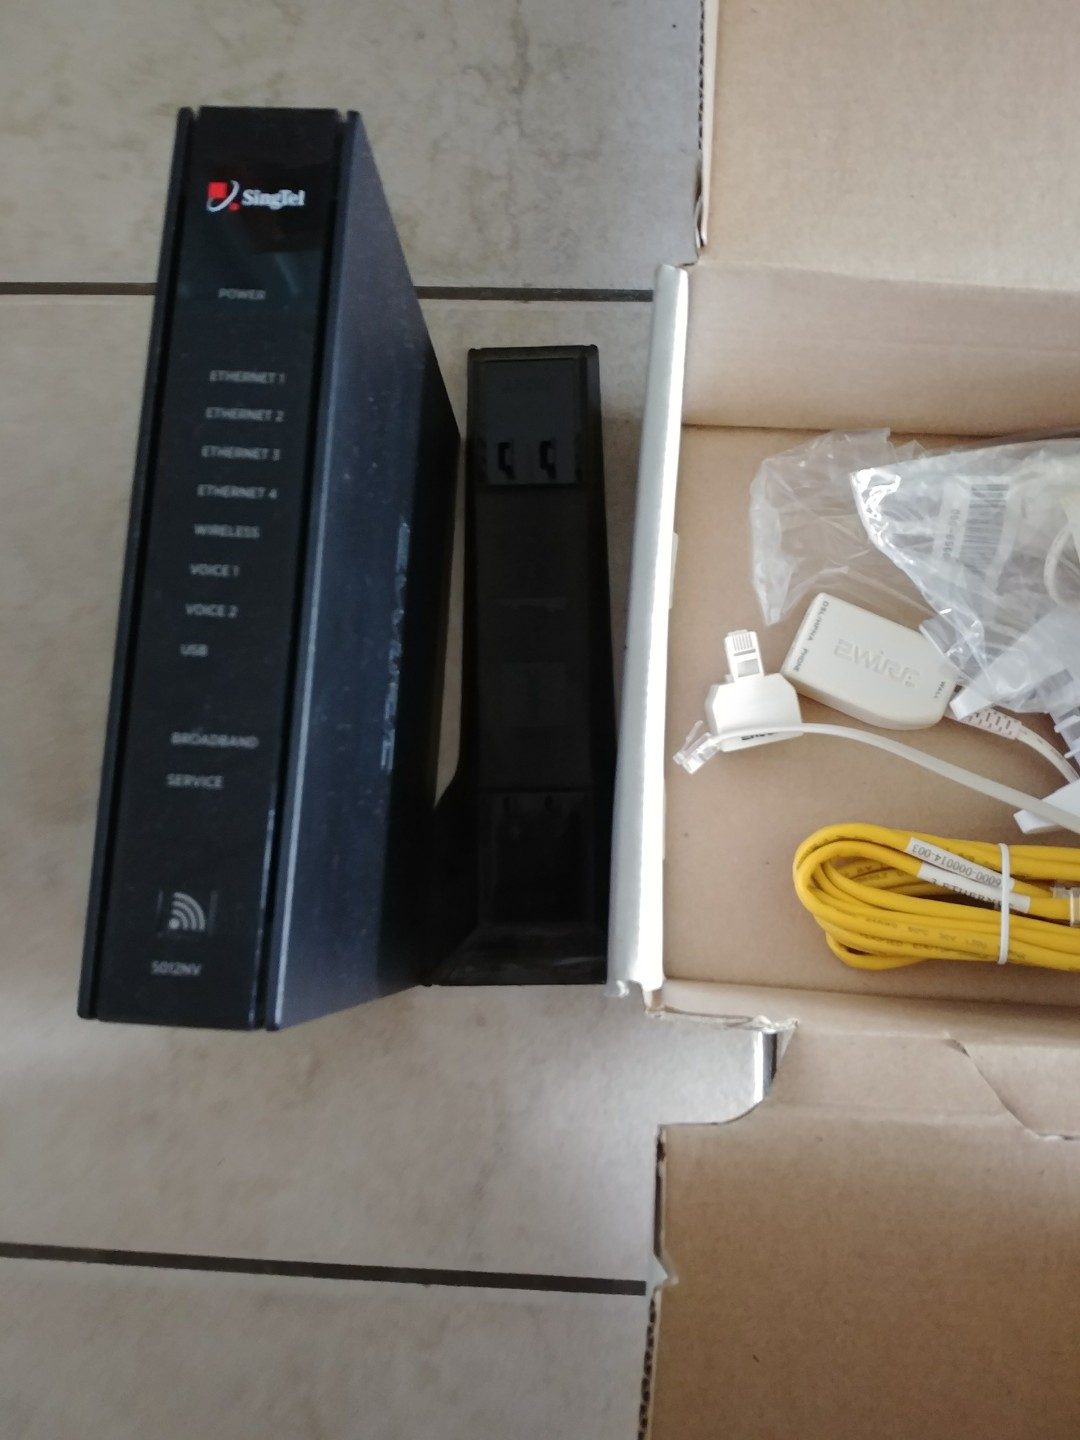 Singtel 2wire router, Electronics, Computer Parts & Accessories on ...